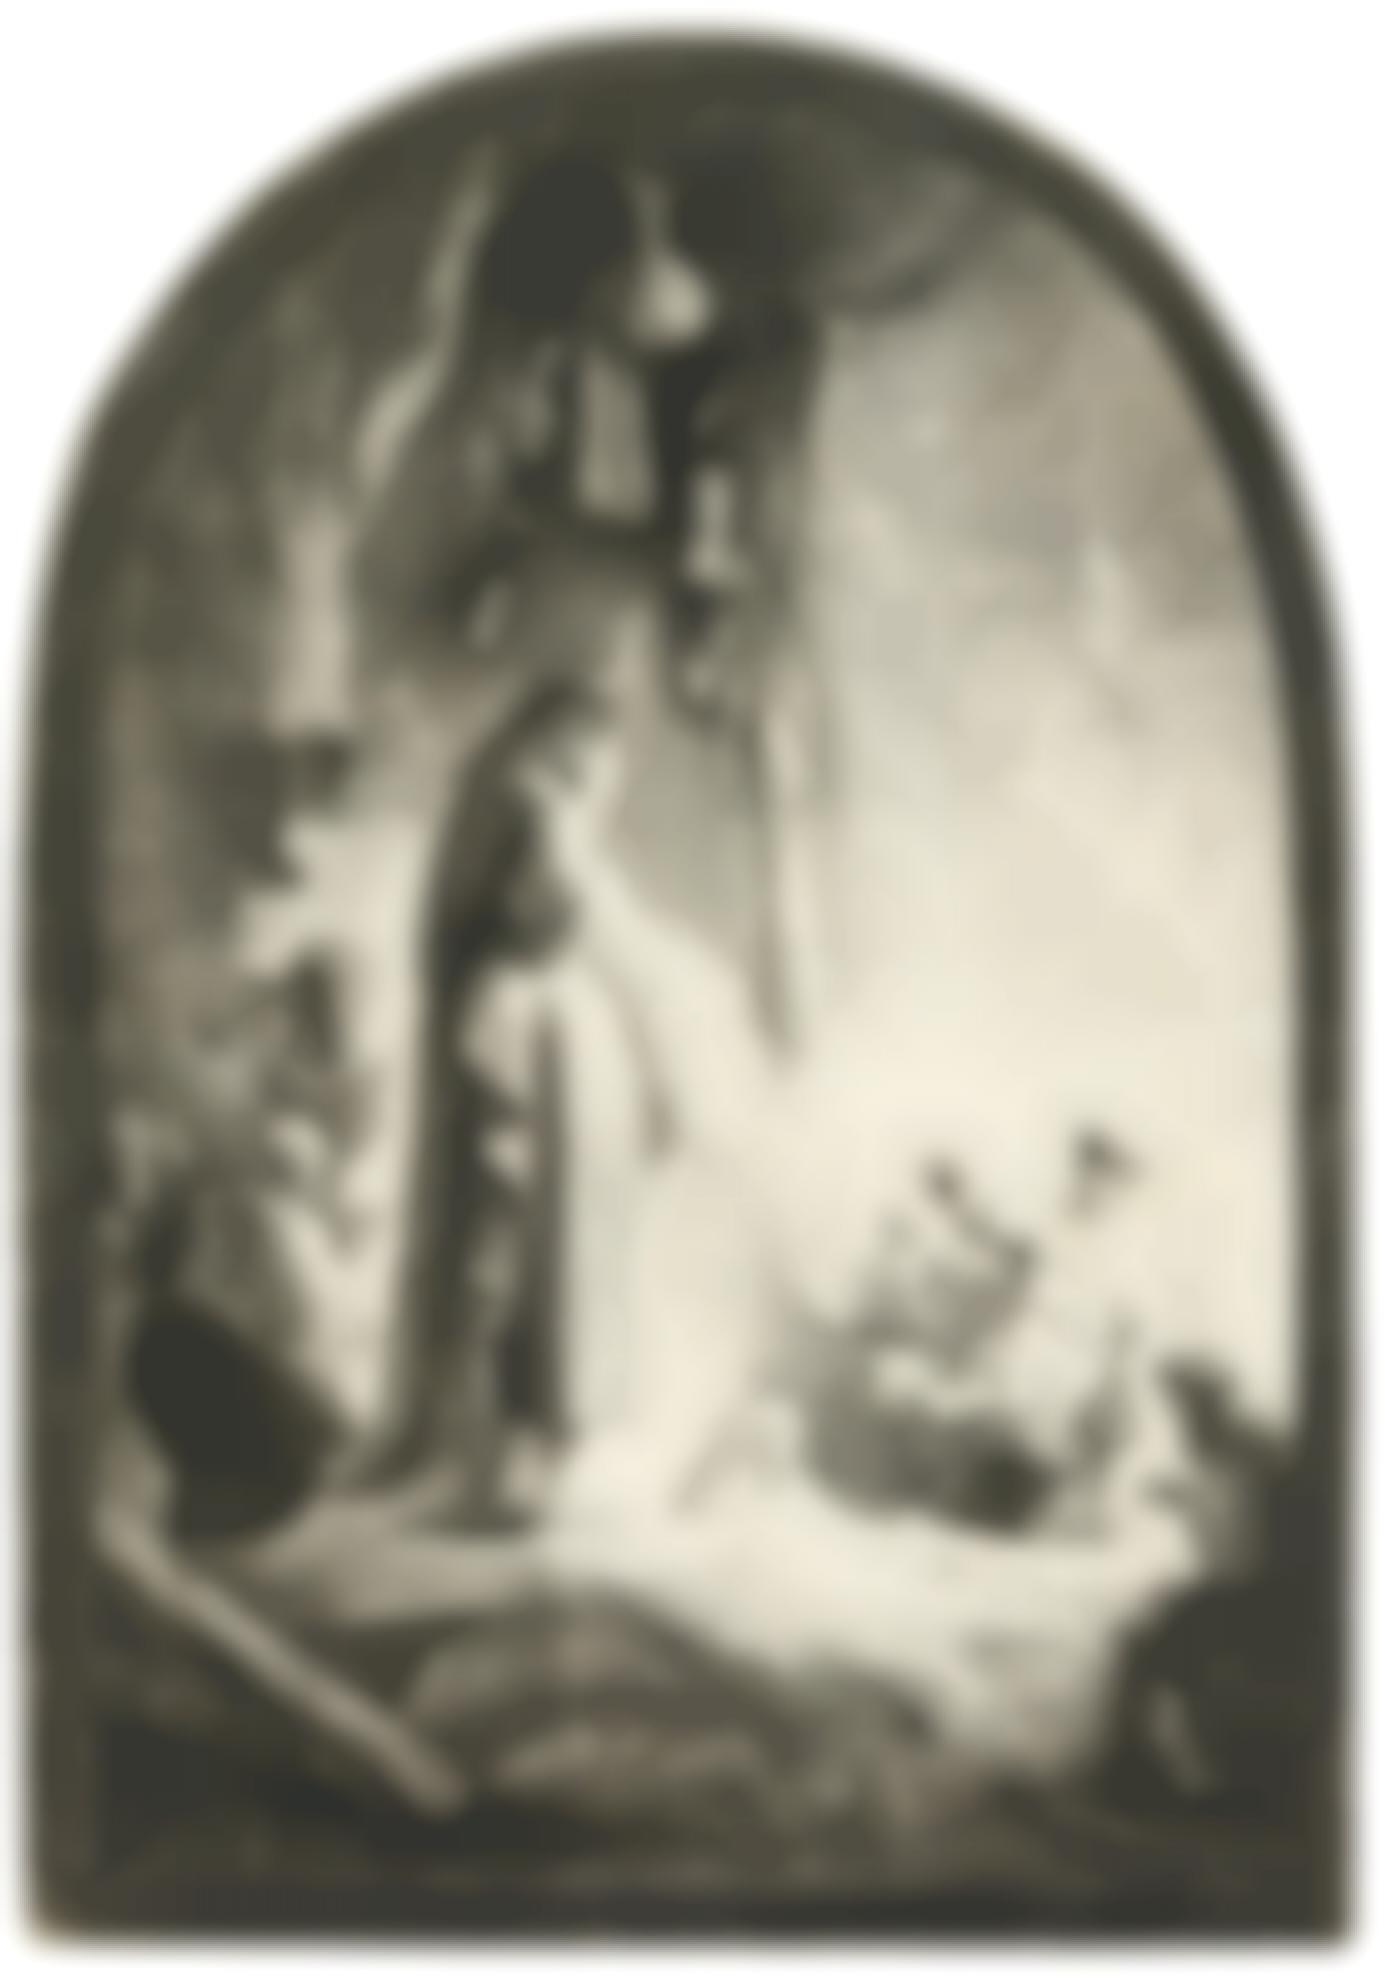 Rembrandt van Rijn-The Raising Of Lazarus: The Larger Plate (B., Holl. 73; New Holl. 113; H. 96)-1632